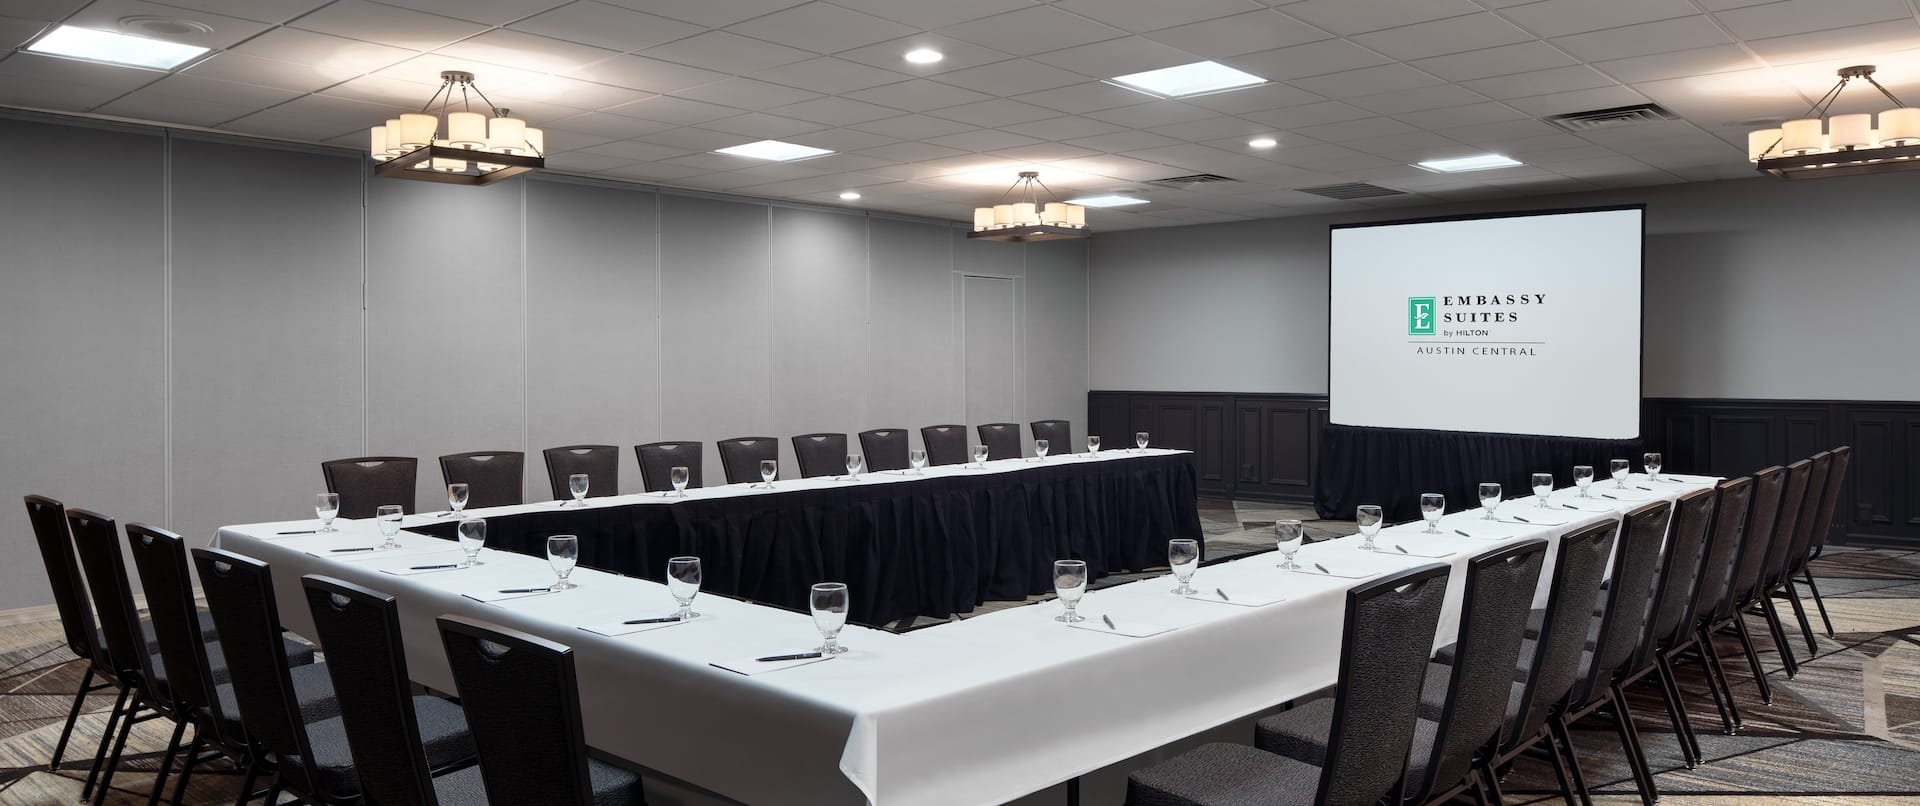 Ballroom U-Shape Table Layout with Projector Screen